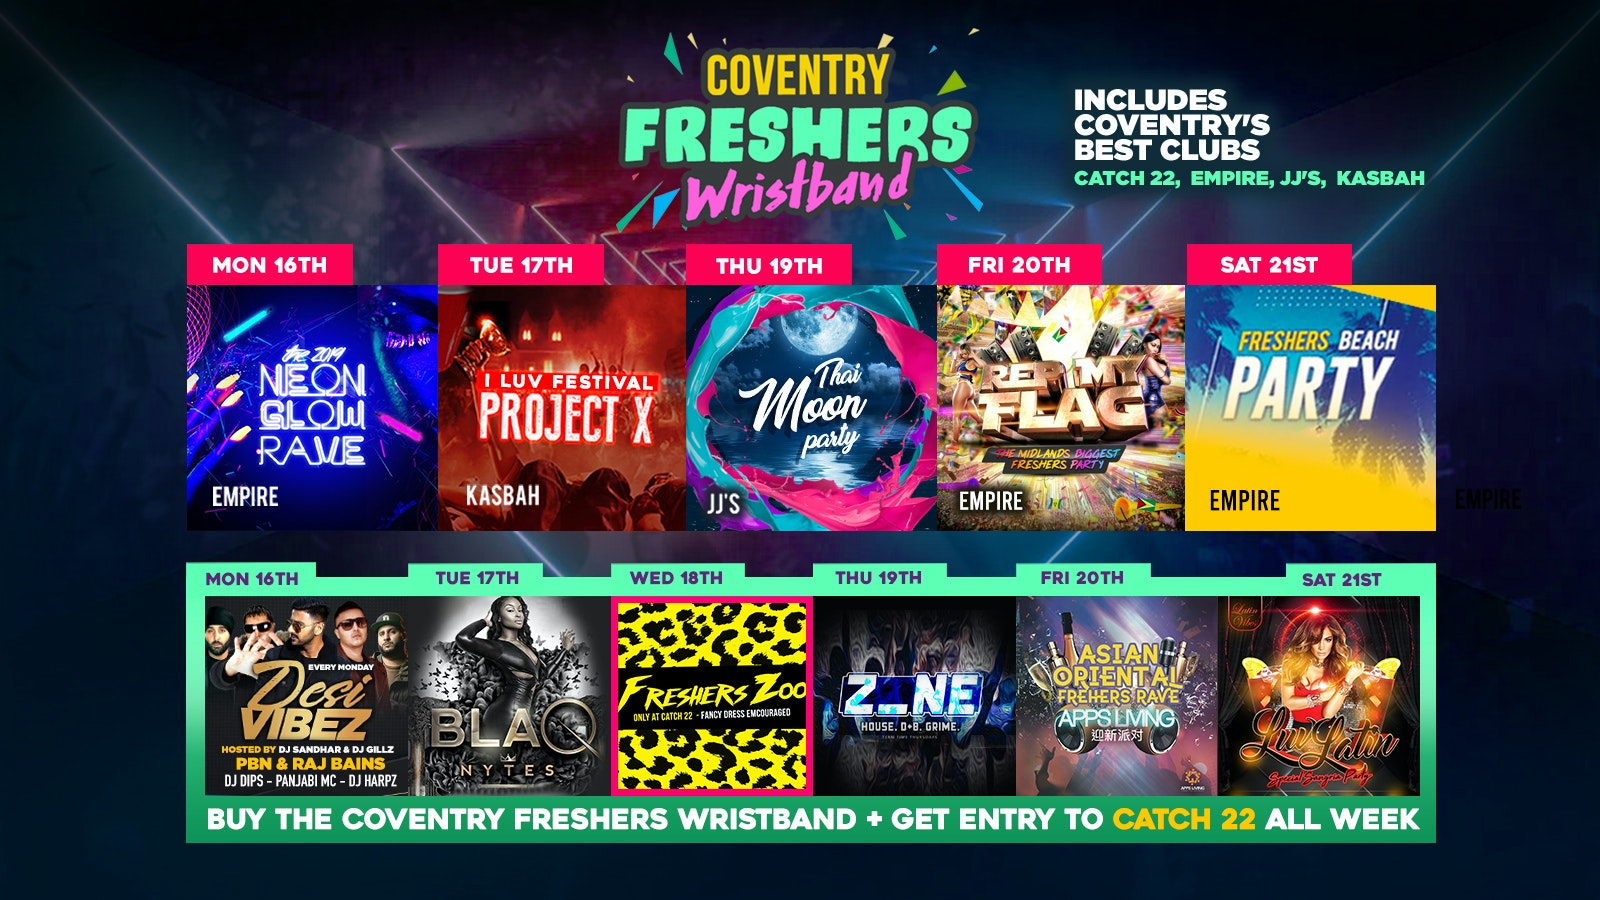 COVENTRY FRESHERS WRISTBAND 2019 / 12 Events, 1 Pass – Last Few Wristbands!